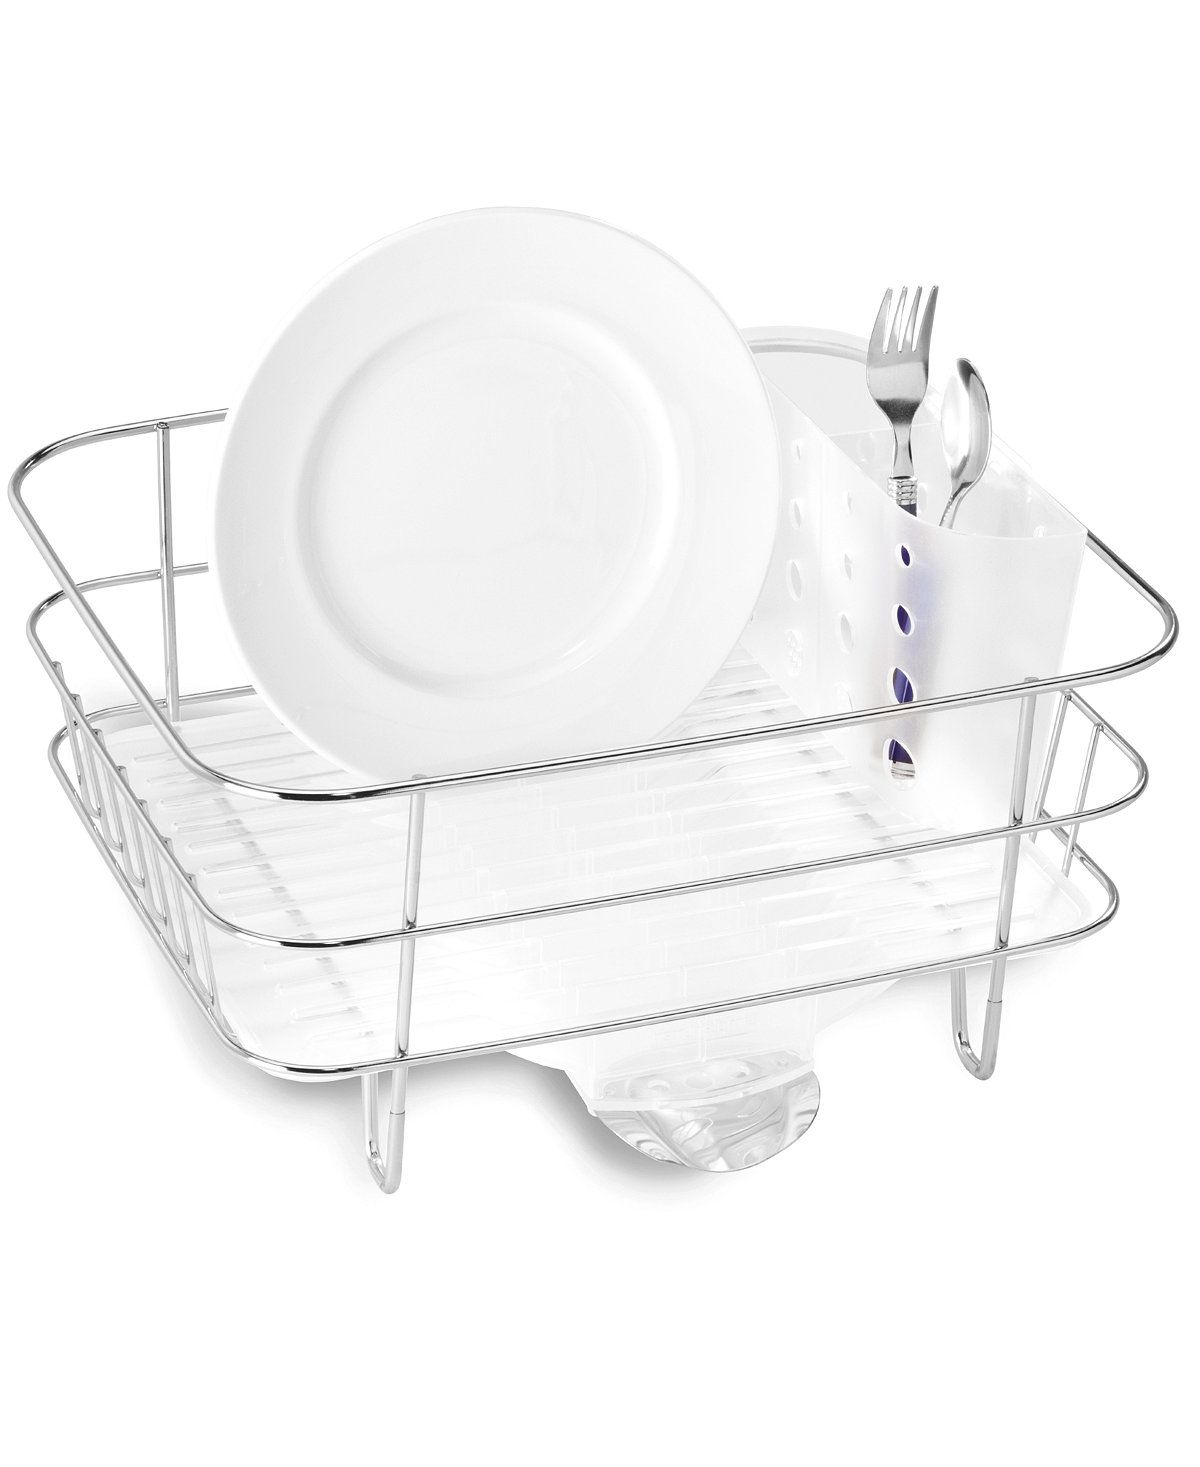 simplehuman Compact Wire Frame dish rack - Kitchen Gadgets - Kitchen - Macy's